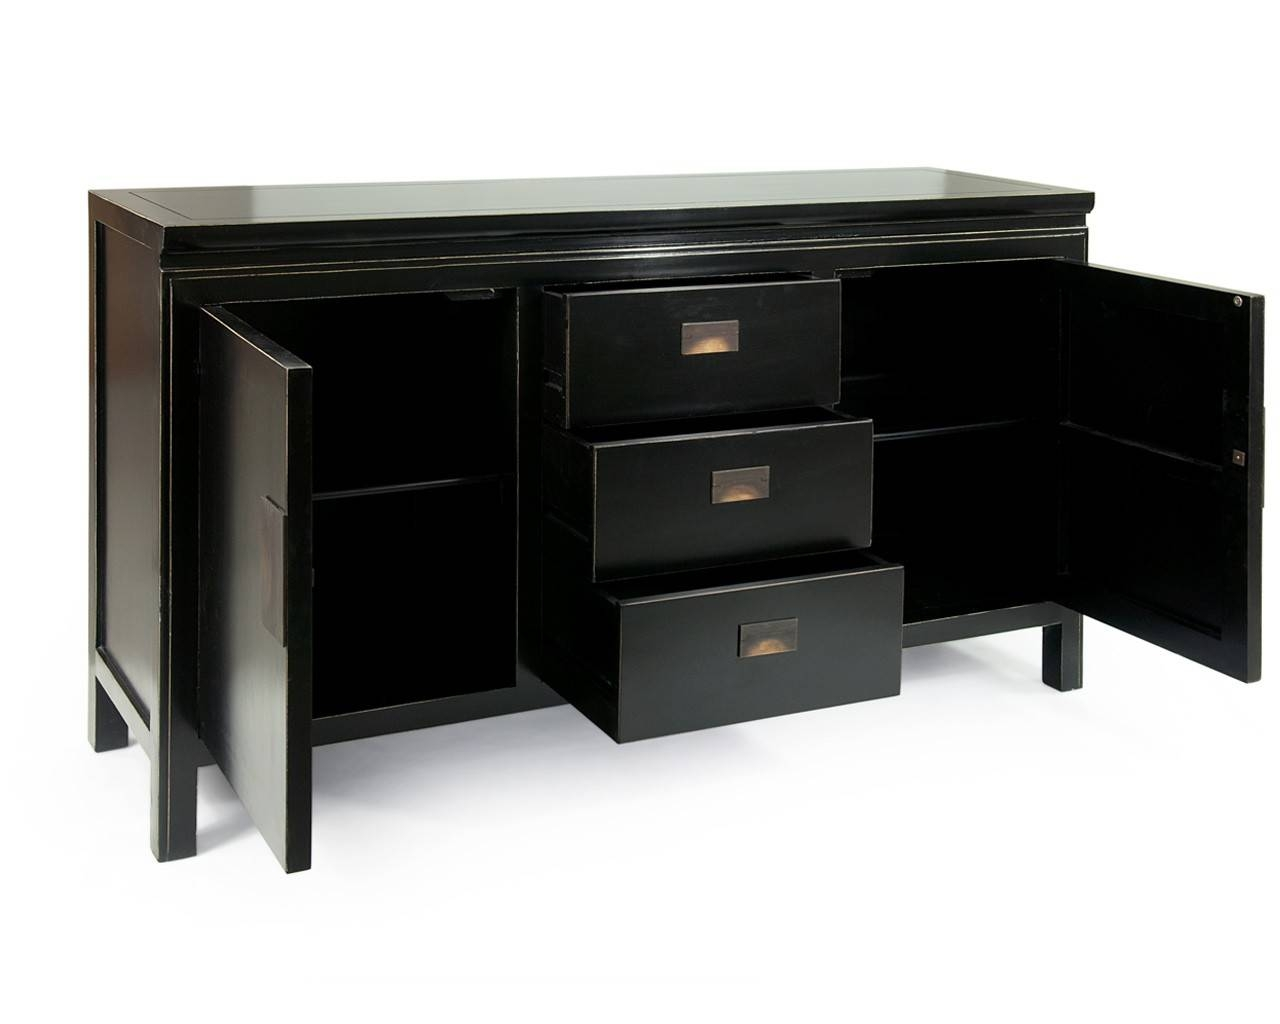 Oriental Black Lacquered Sideboards – Shanxi Large Intended For Sideboards Black (View 10 of 20)